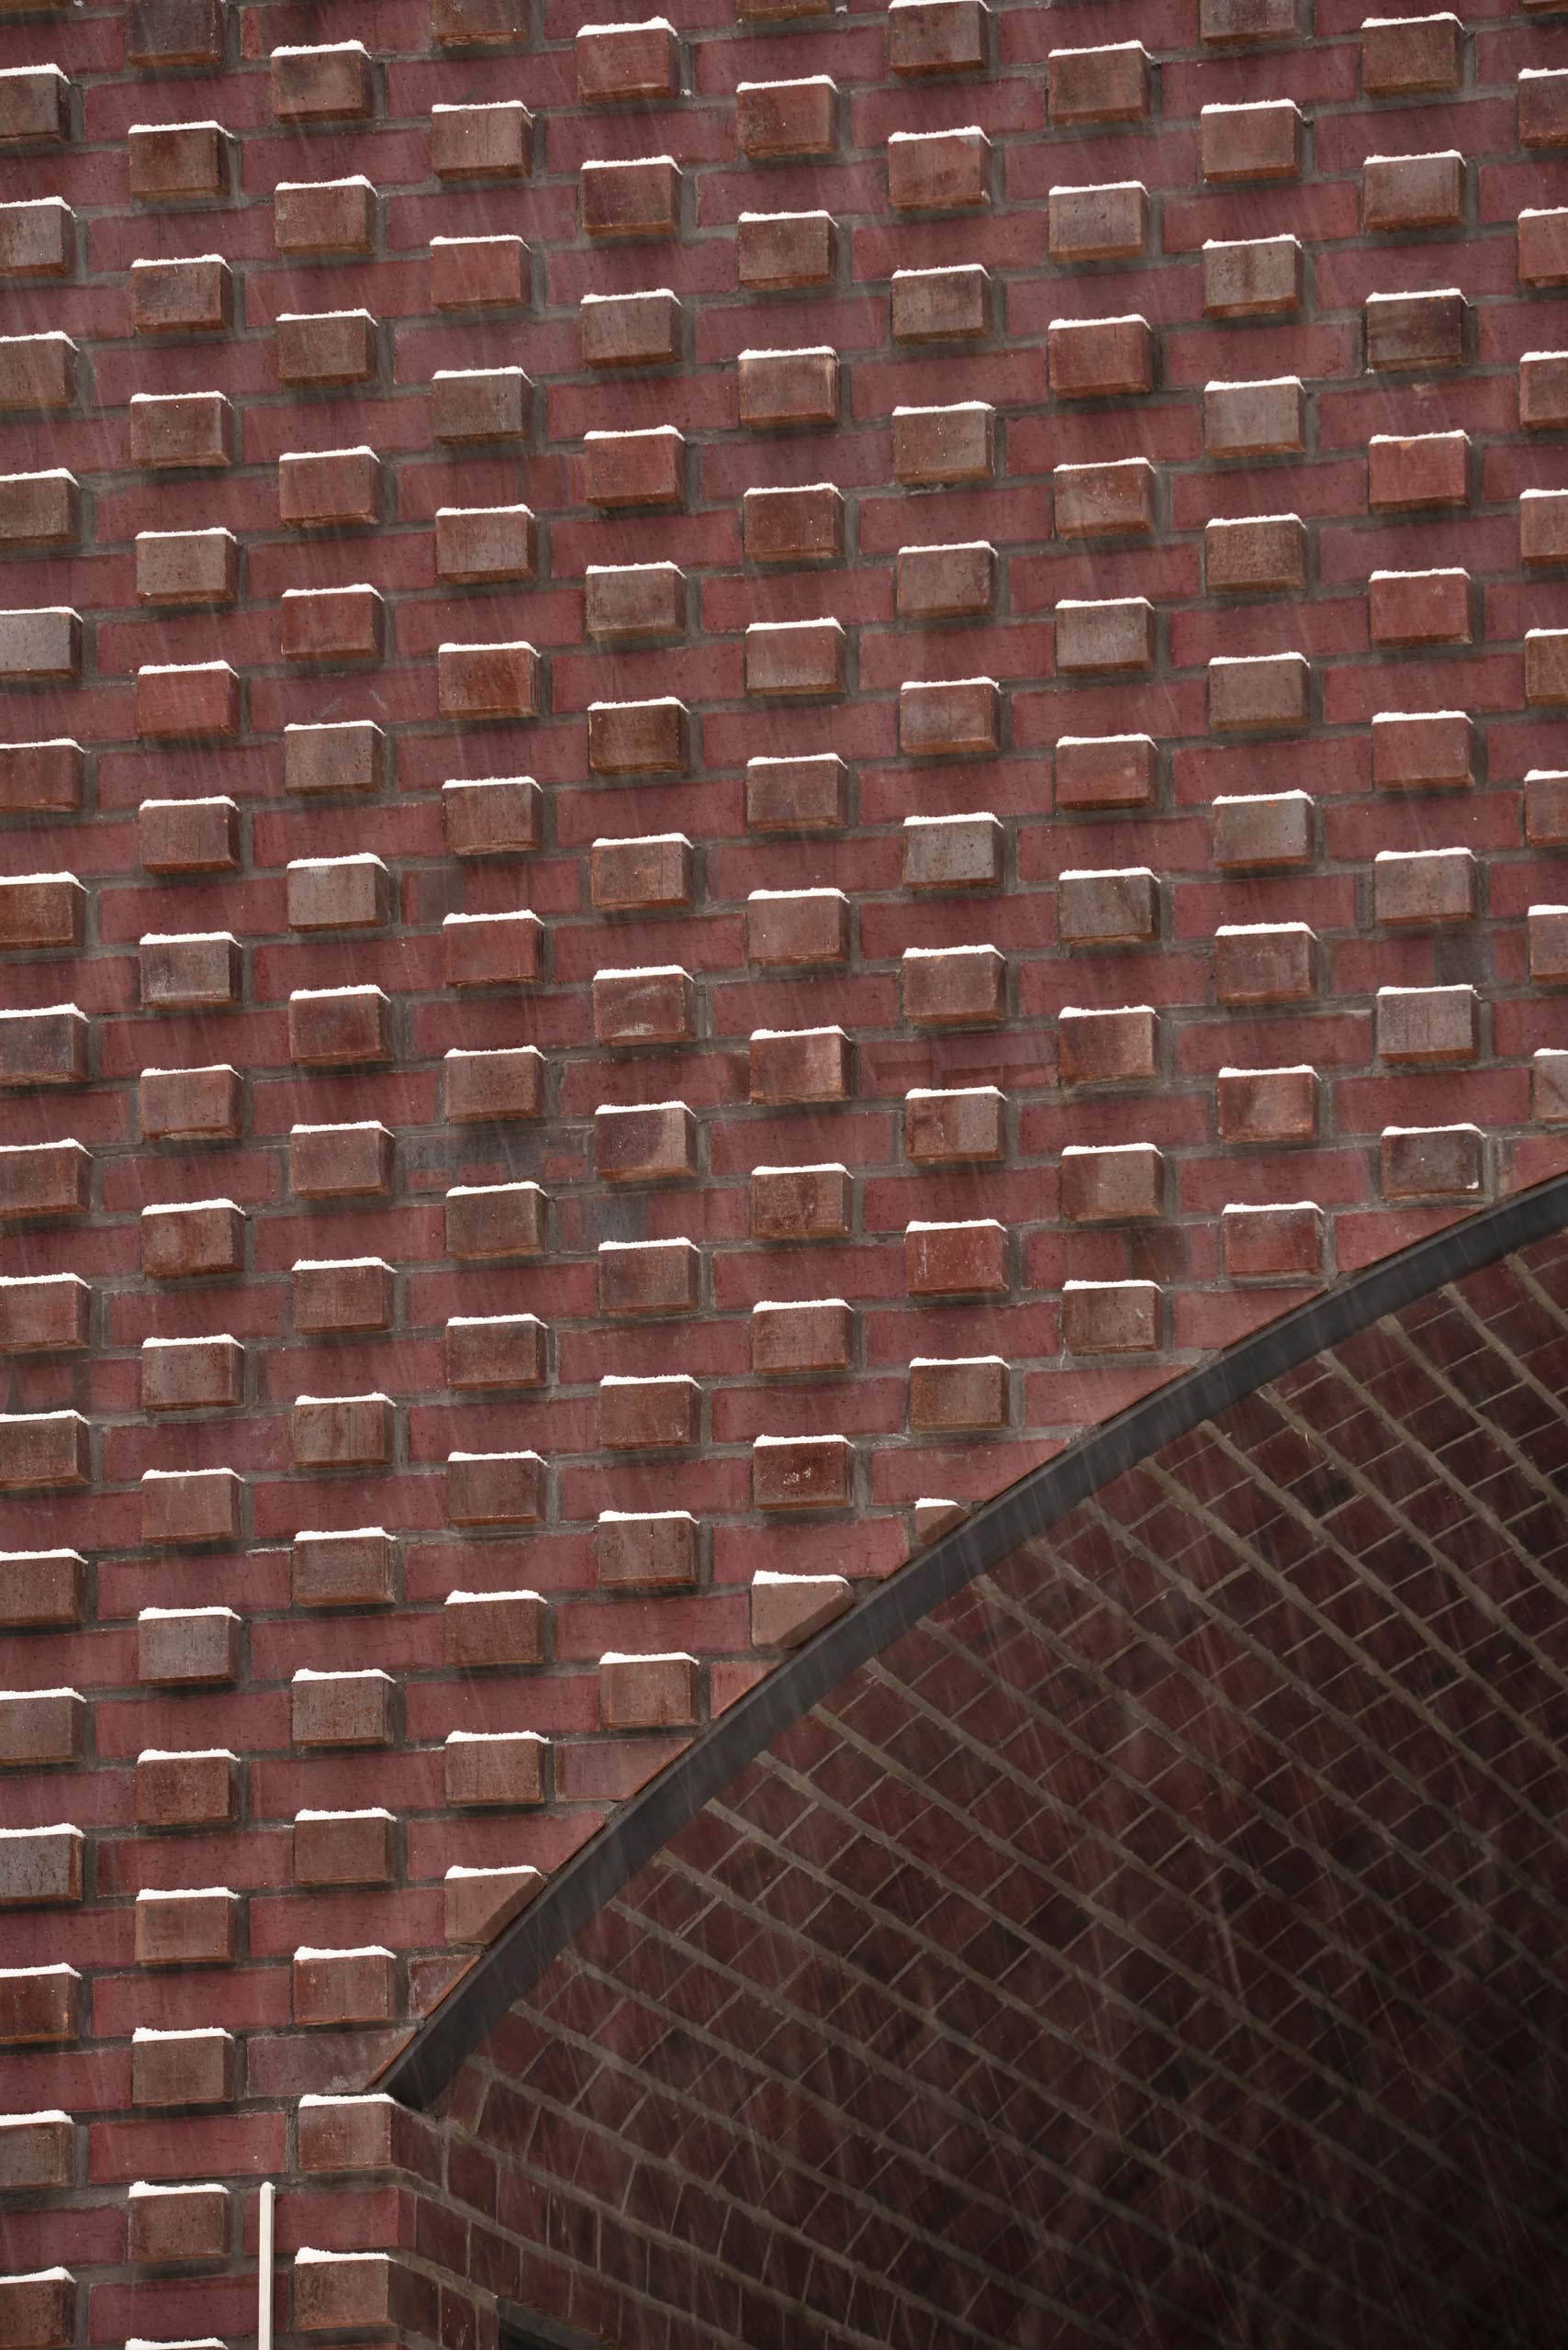 In the summer, the brick protrusions texture the facade with stark shadows, and in the winter the texture transforms through bricks creating shelves for the snow to fall on.